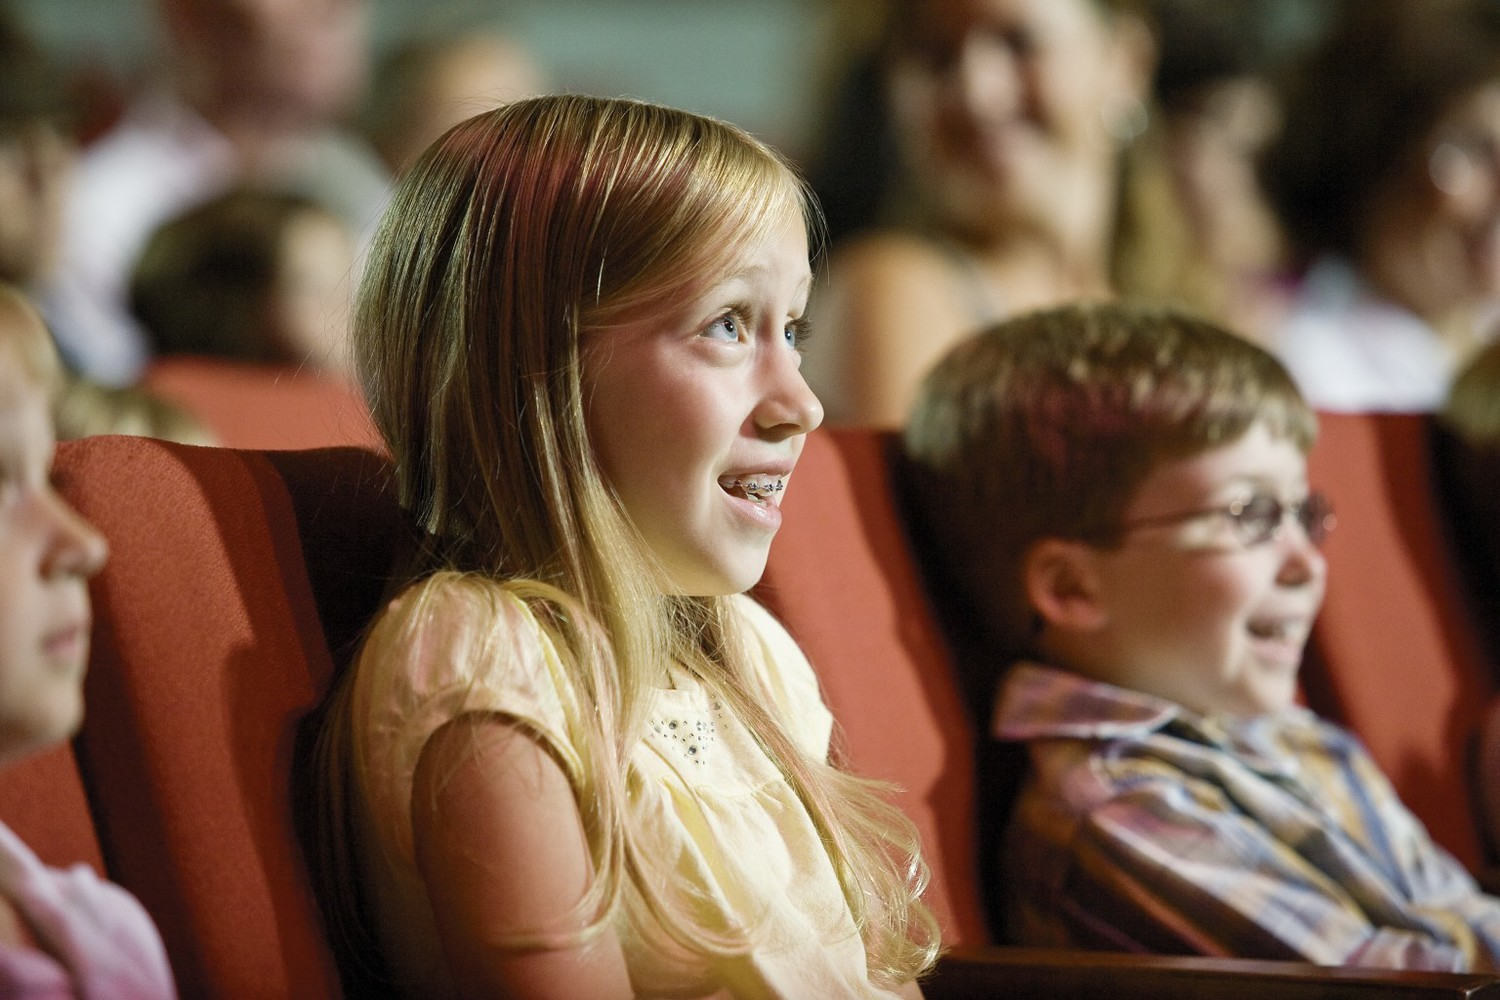 Sister and brother sitting in theatre seats